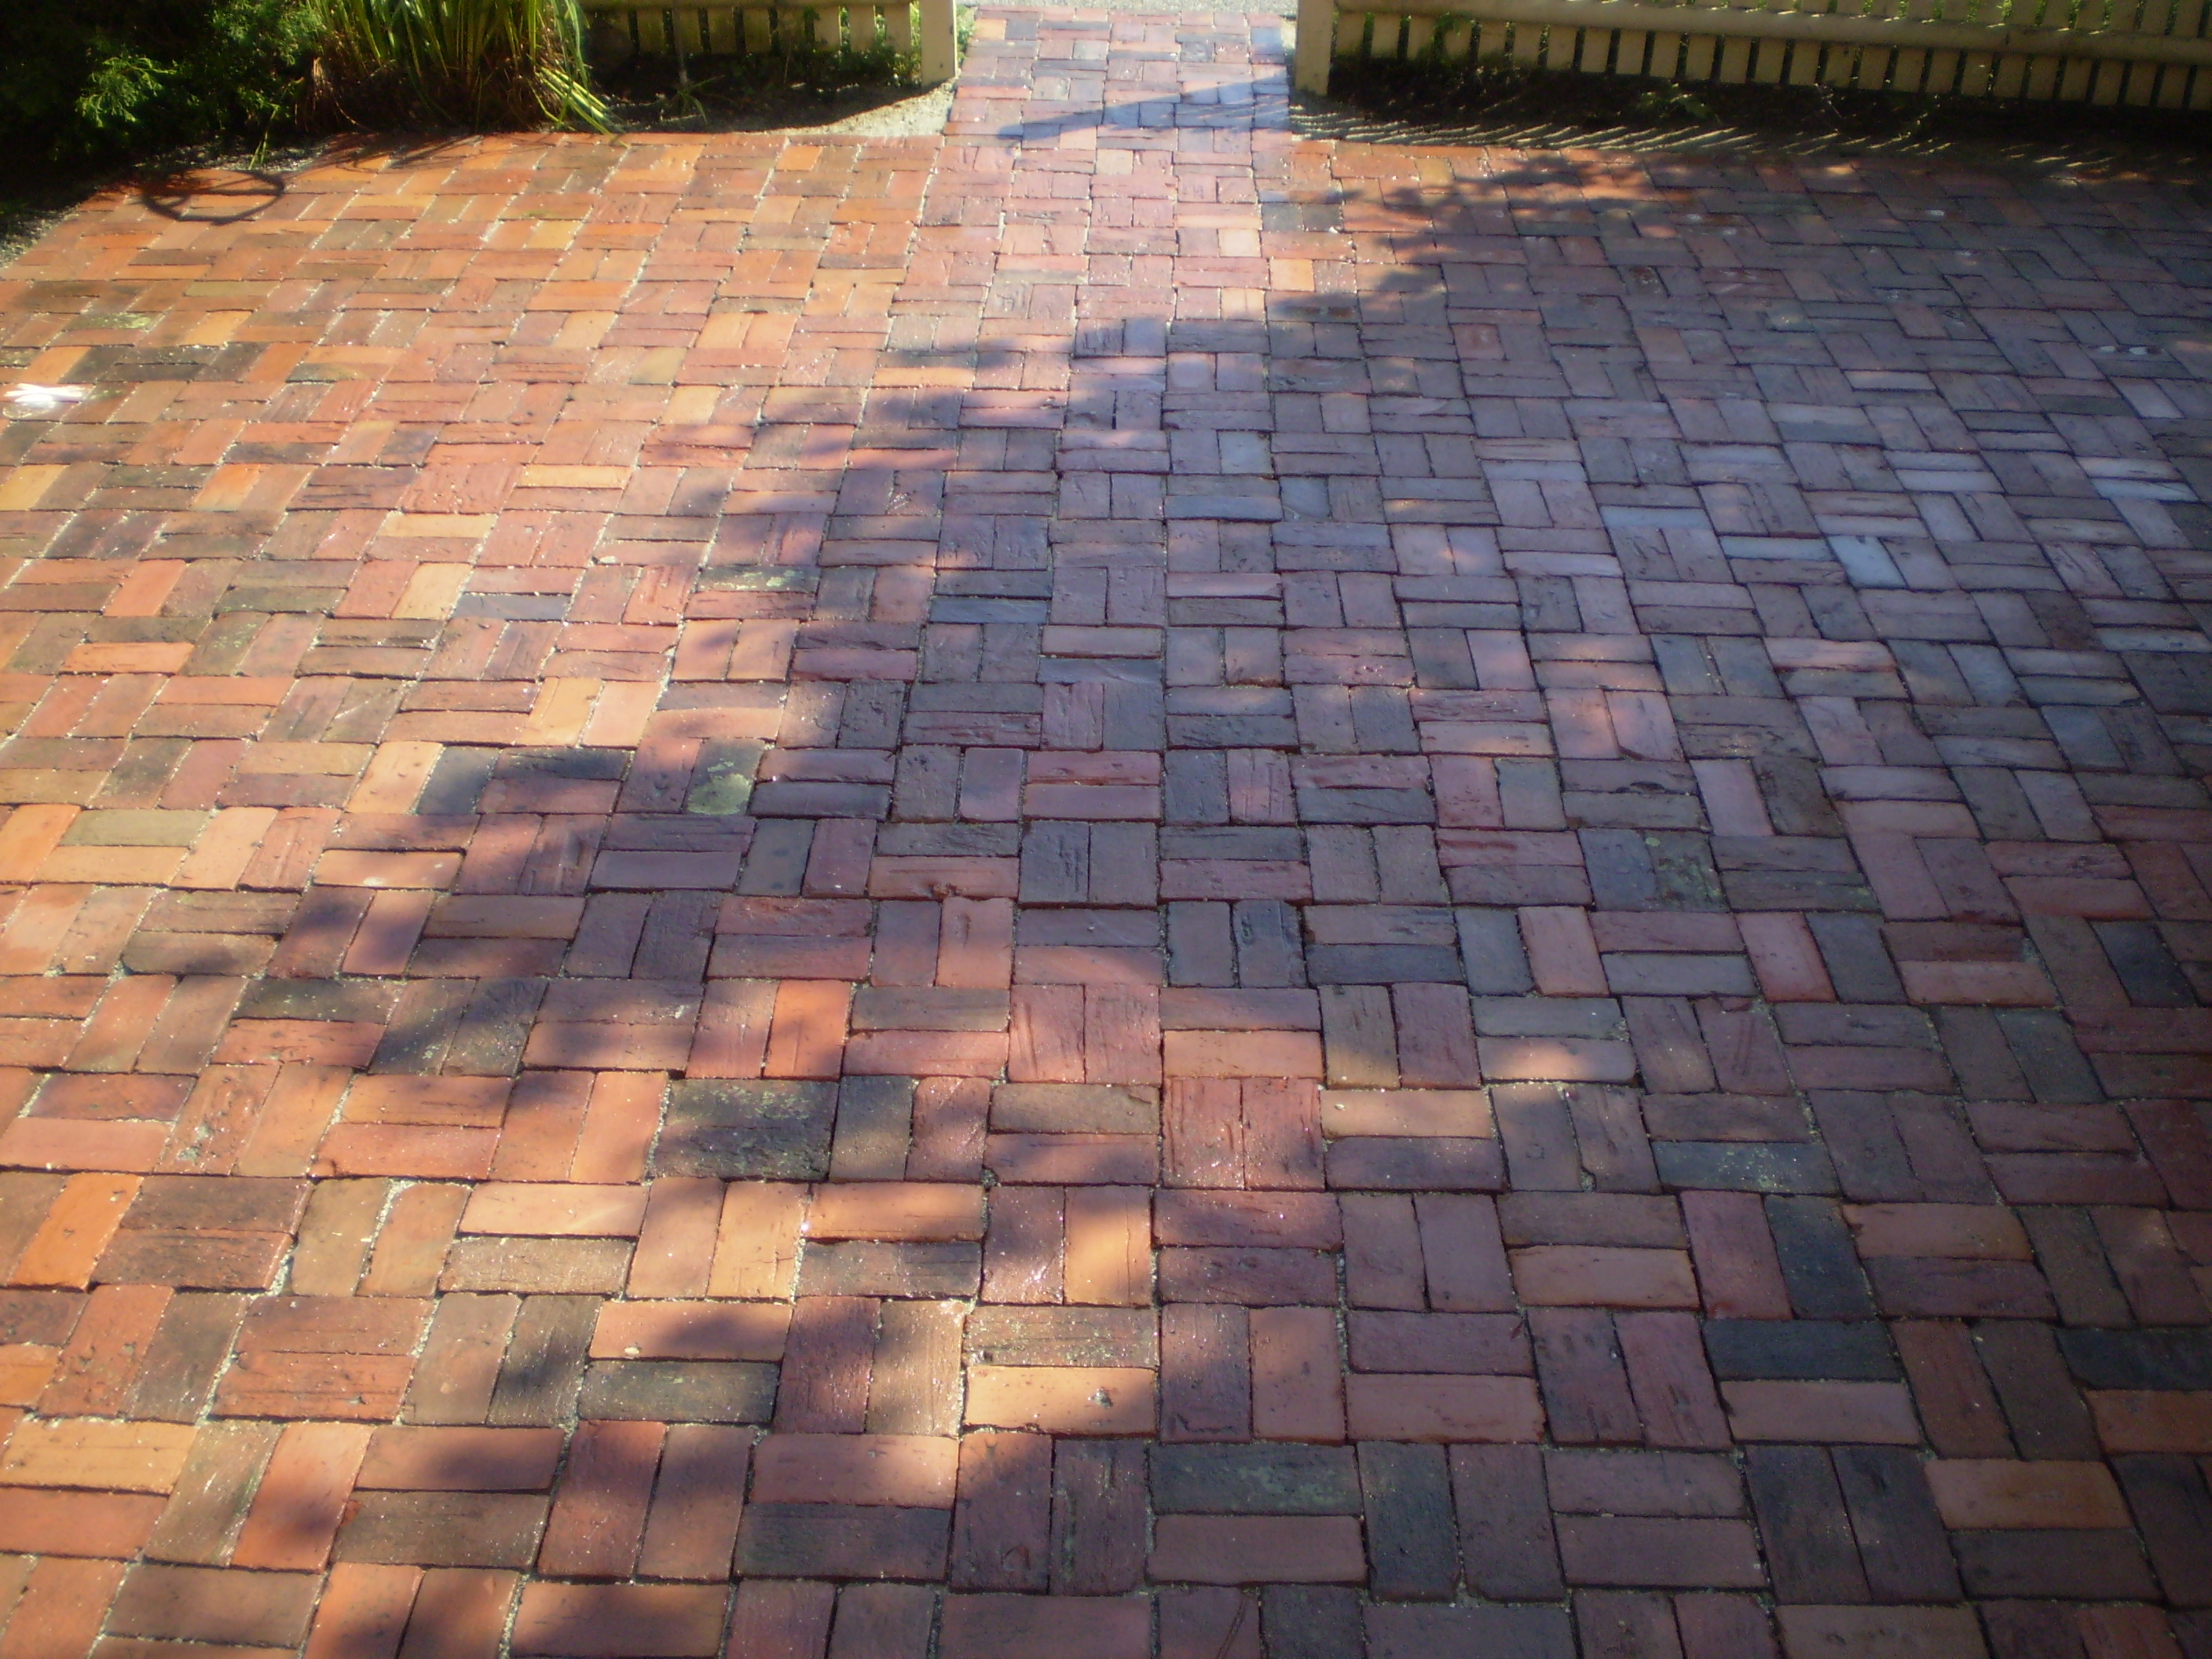 Maine stonework masonry hardscaping perennial stone reclaimed brick patio yarmouth maine - Reclaimed brick design ideas ...